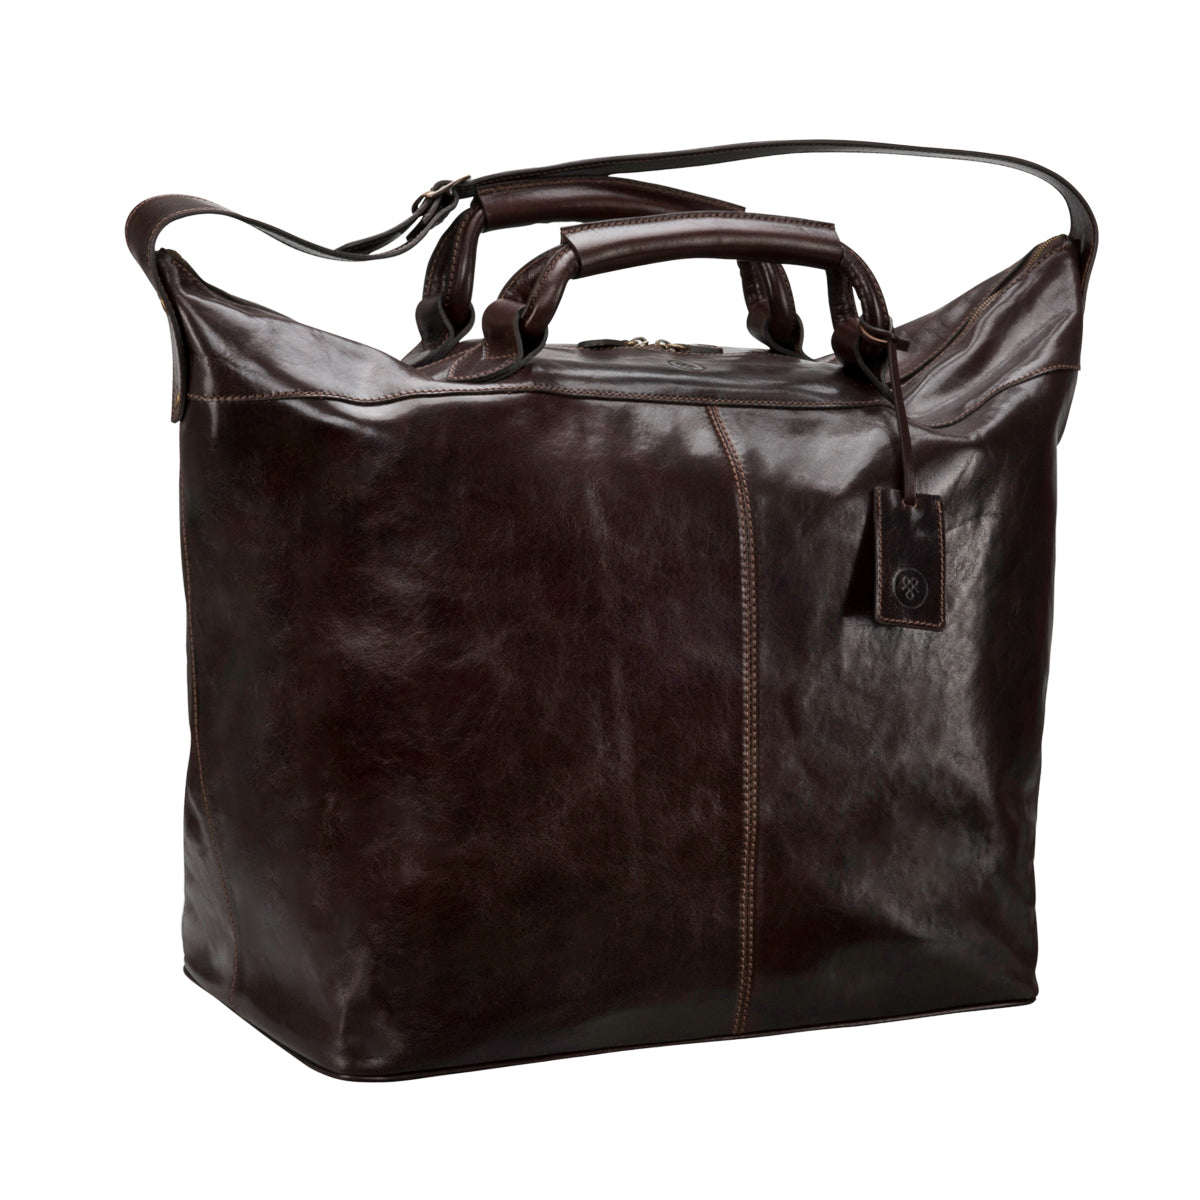 Image 2 of the 'Fabrizio' Chocolate Veg-Tanned Leather Holdall